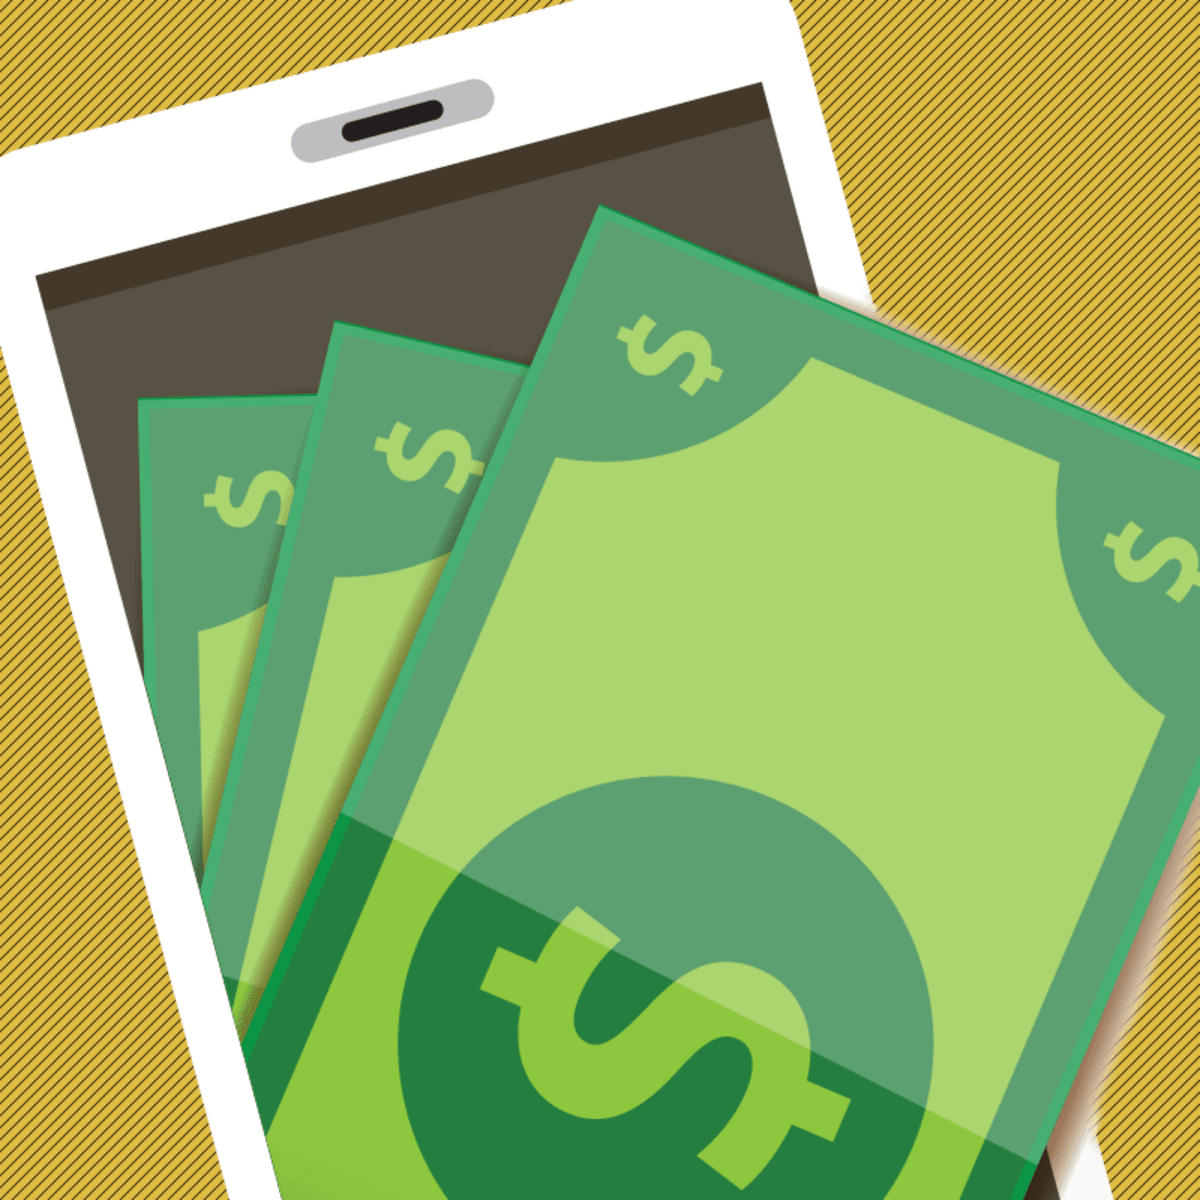 The 20 Best Money-Making Apps - TheStreet